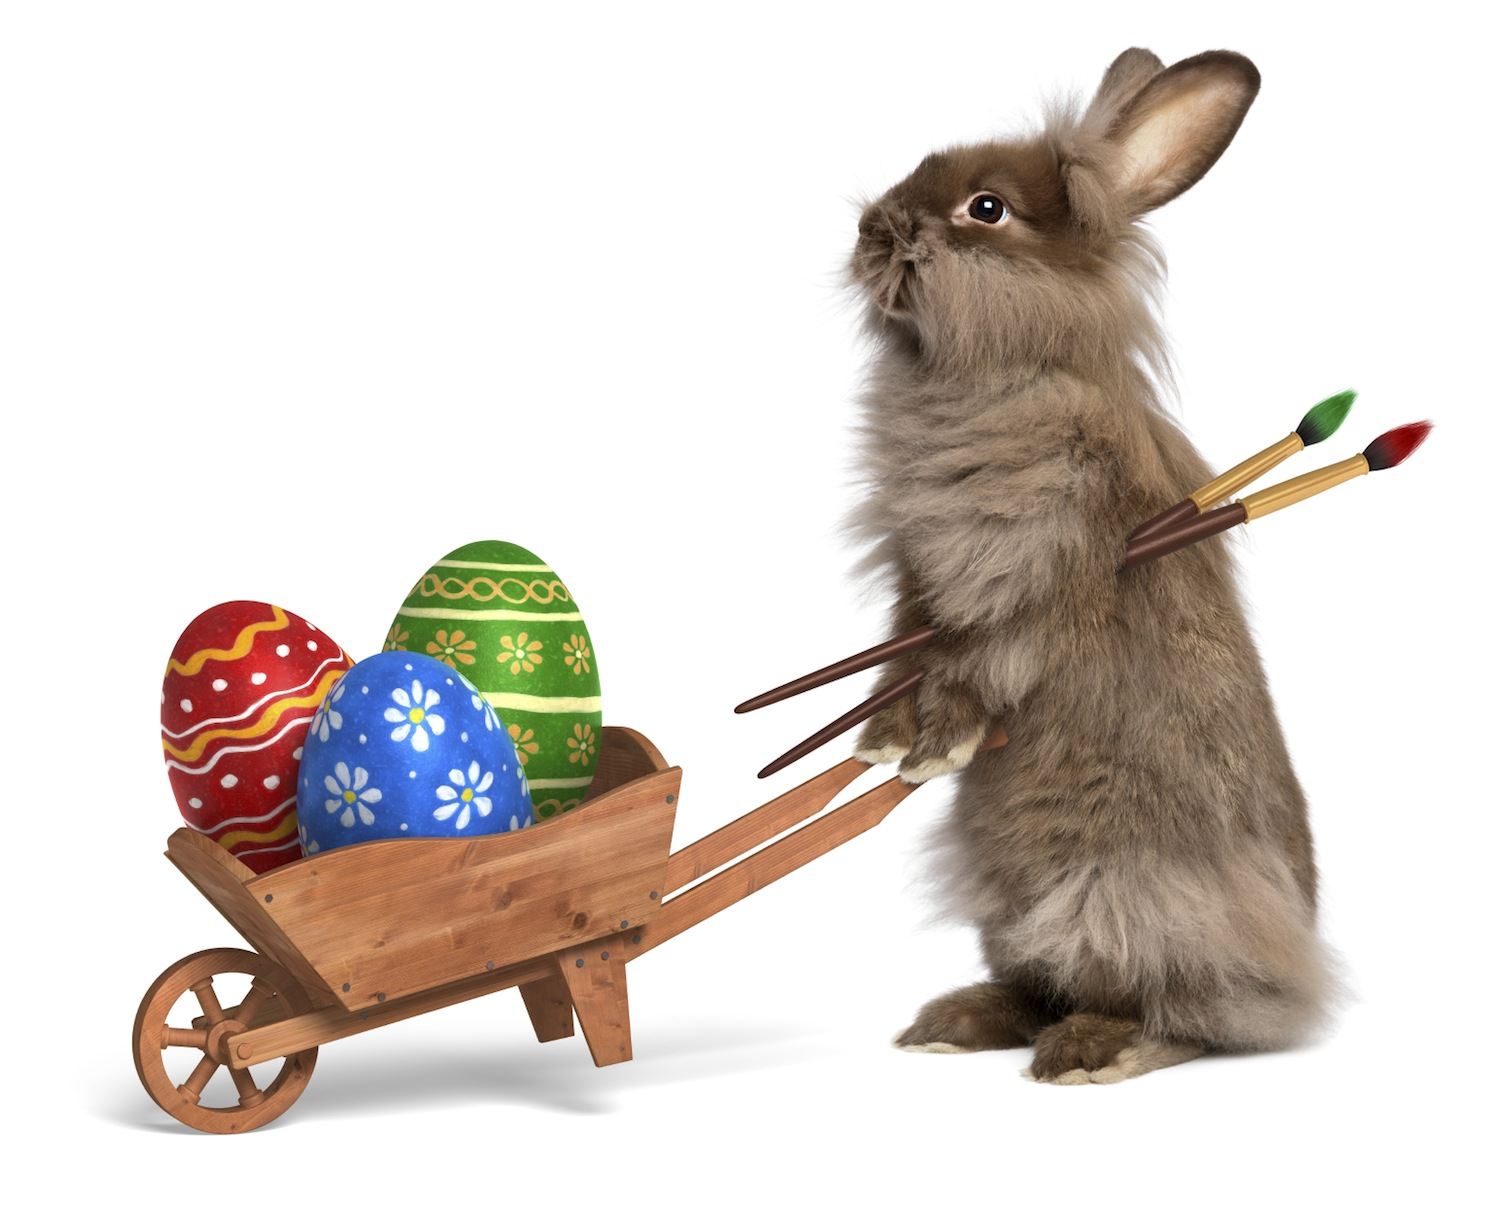 Easter Scenes Pictures - ClipArt Best